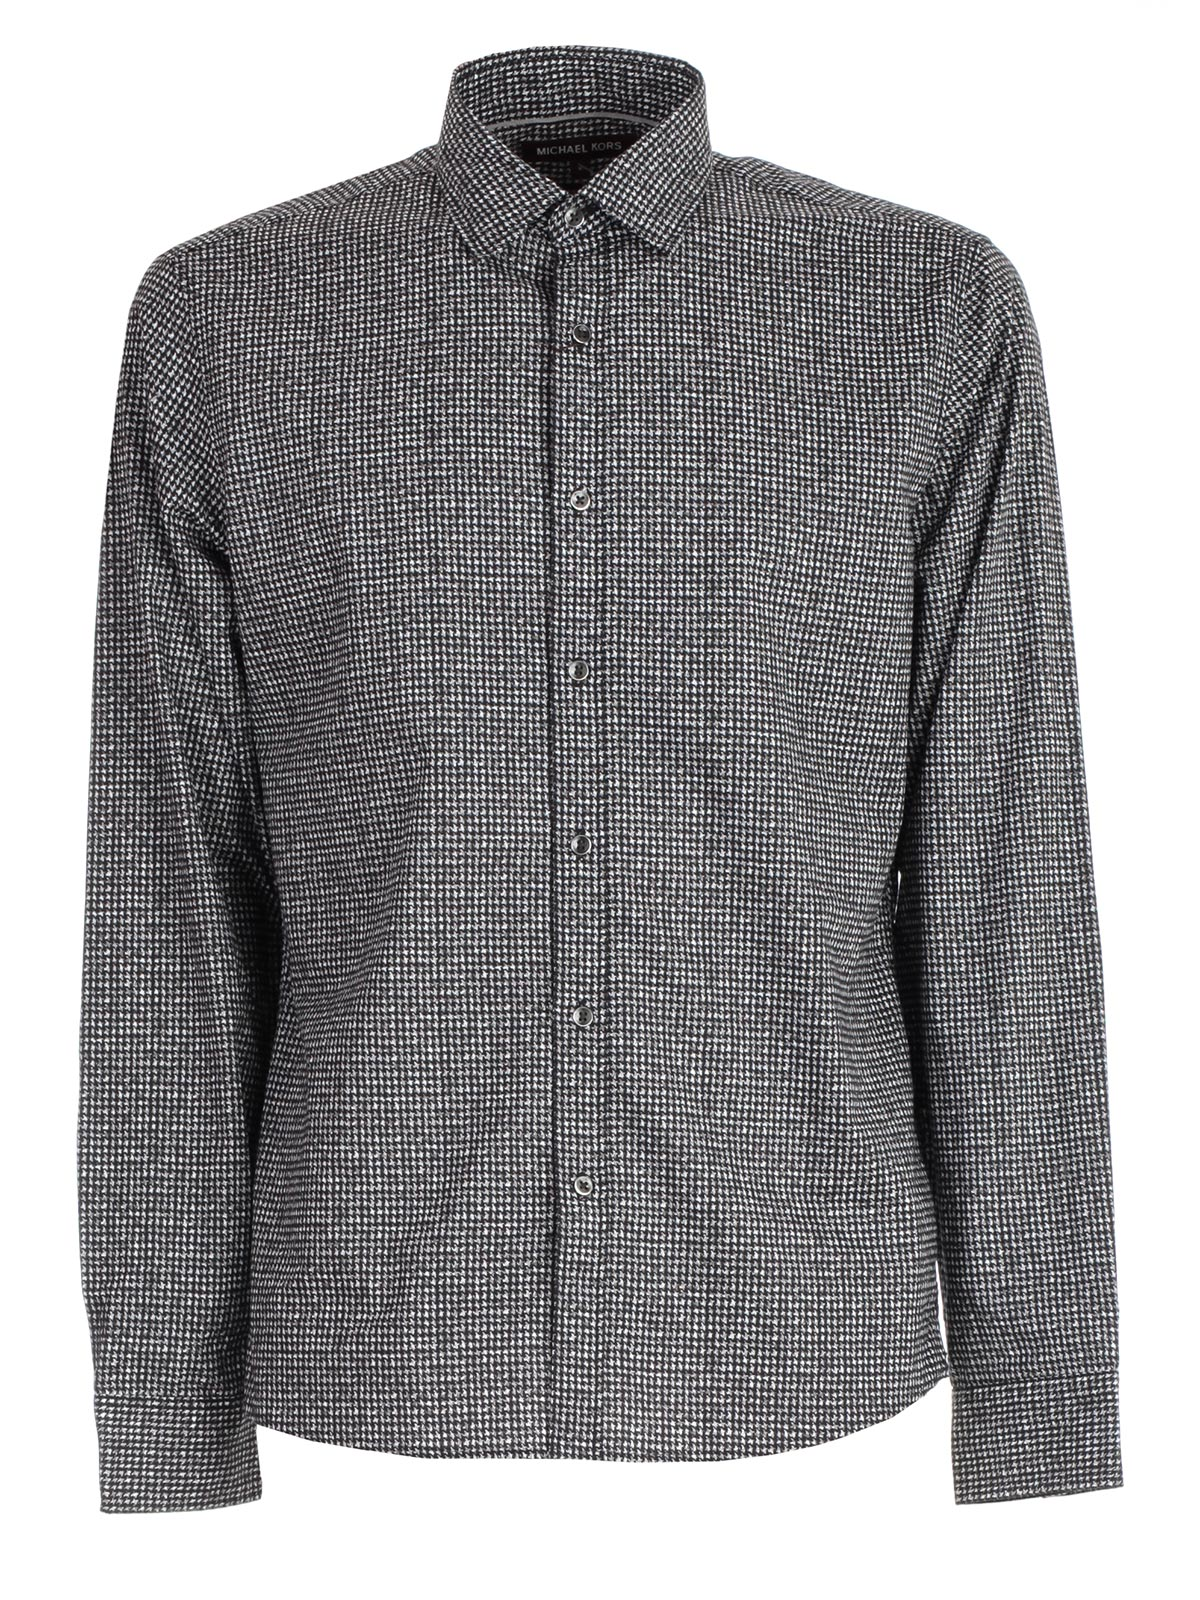 Picture of Micheal Kors  Shirt